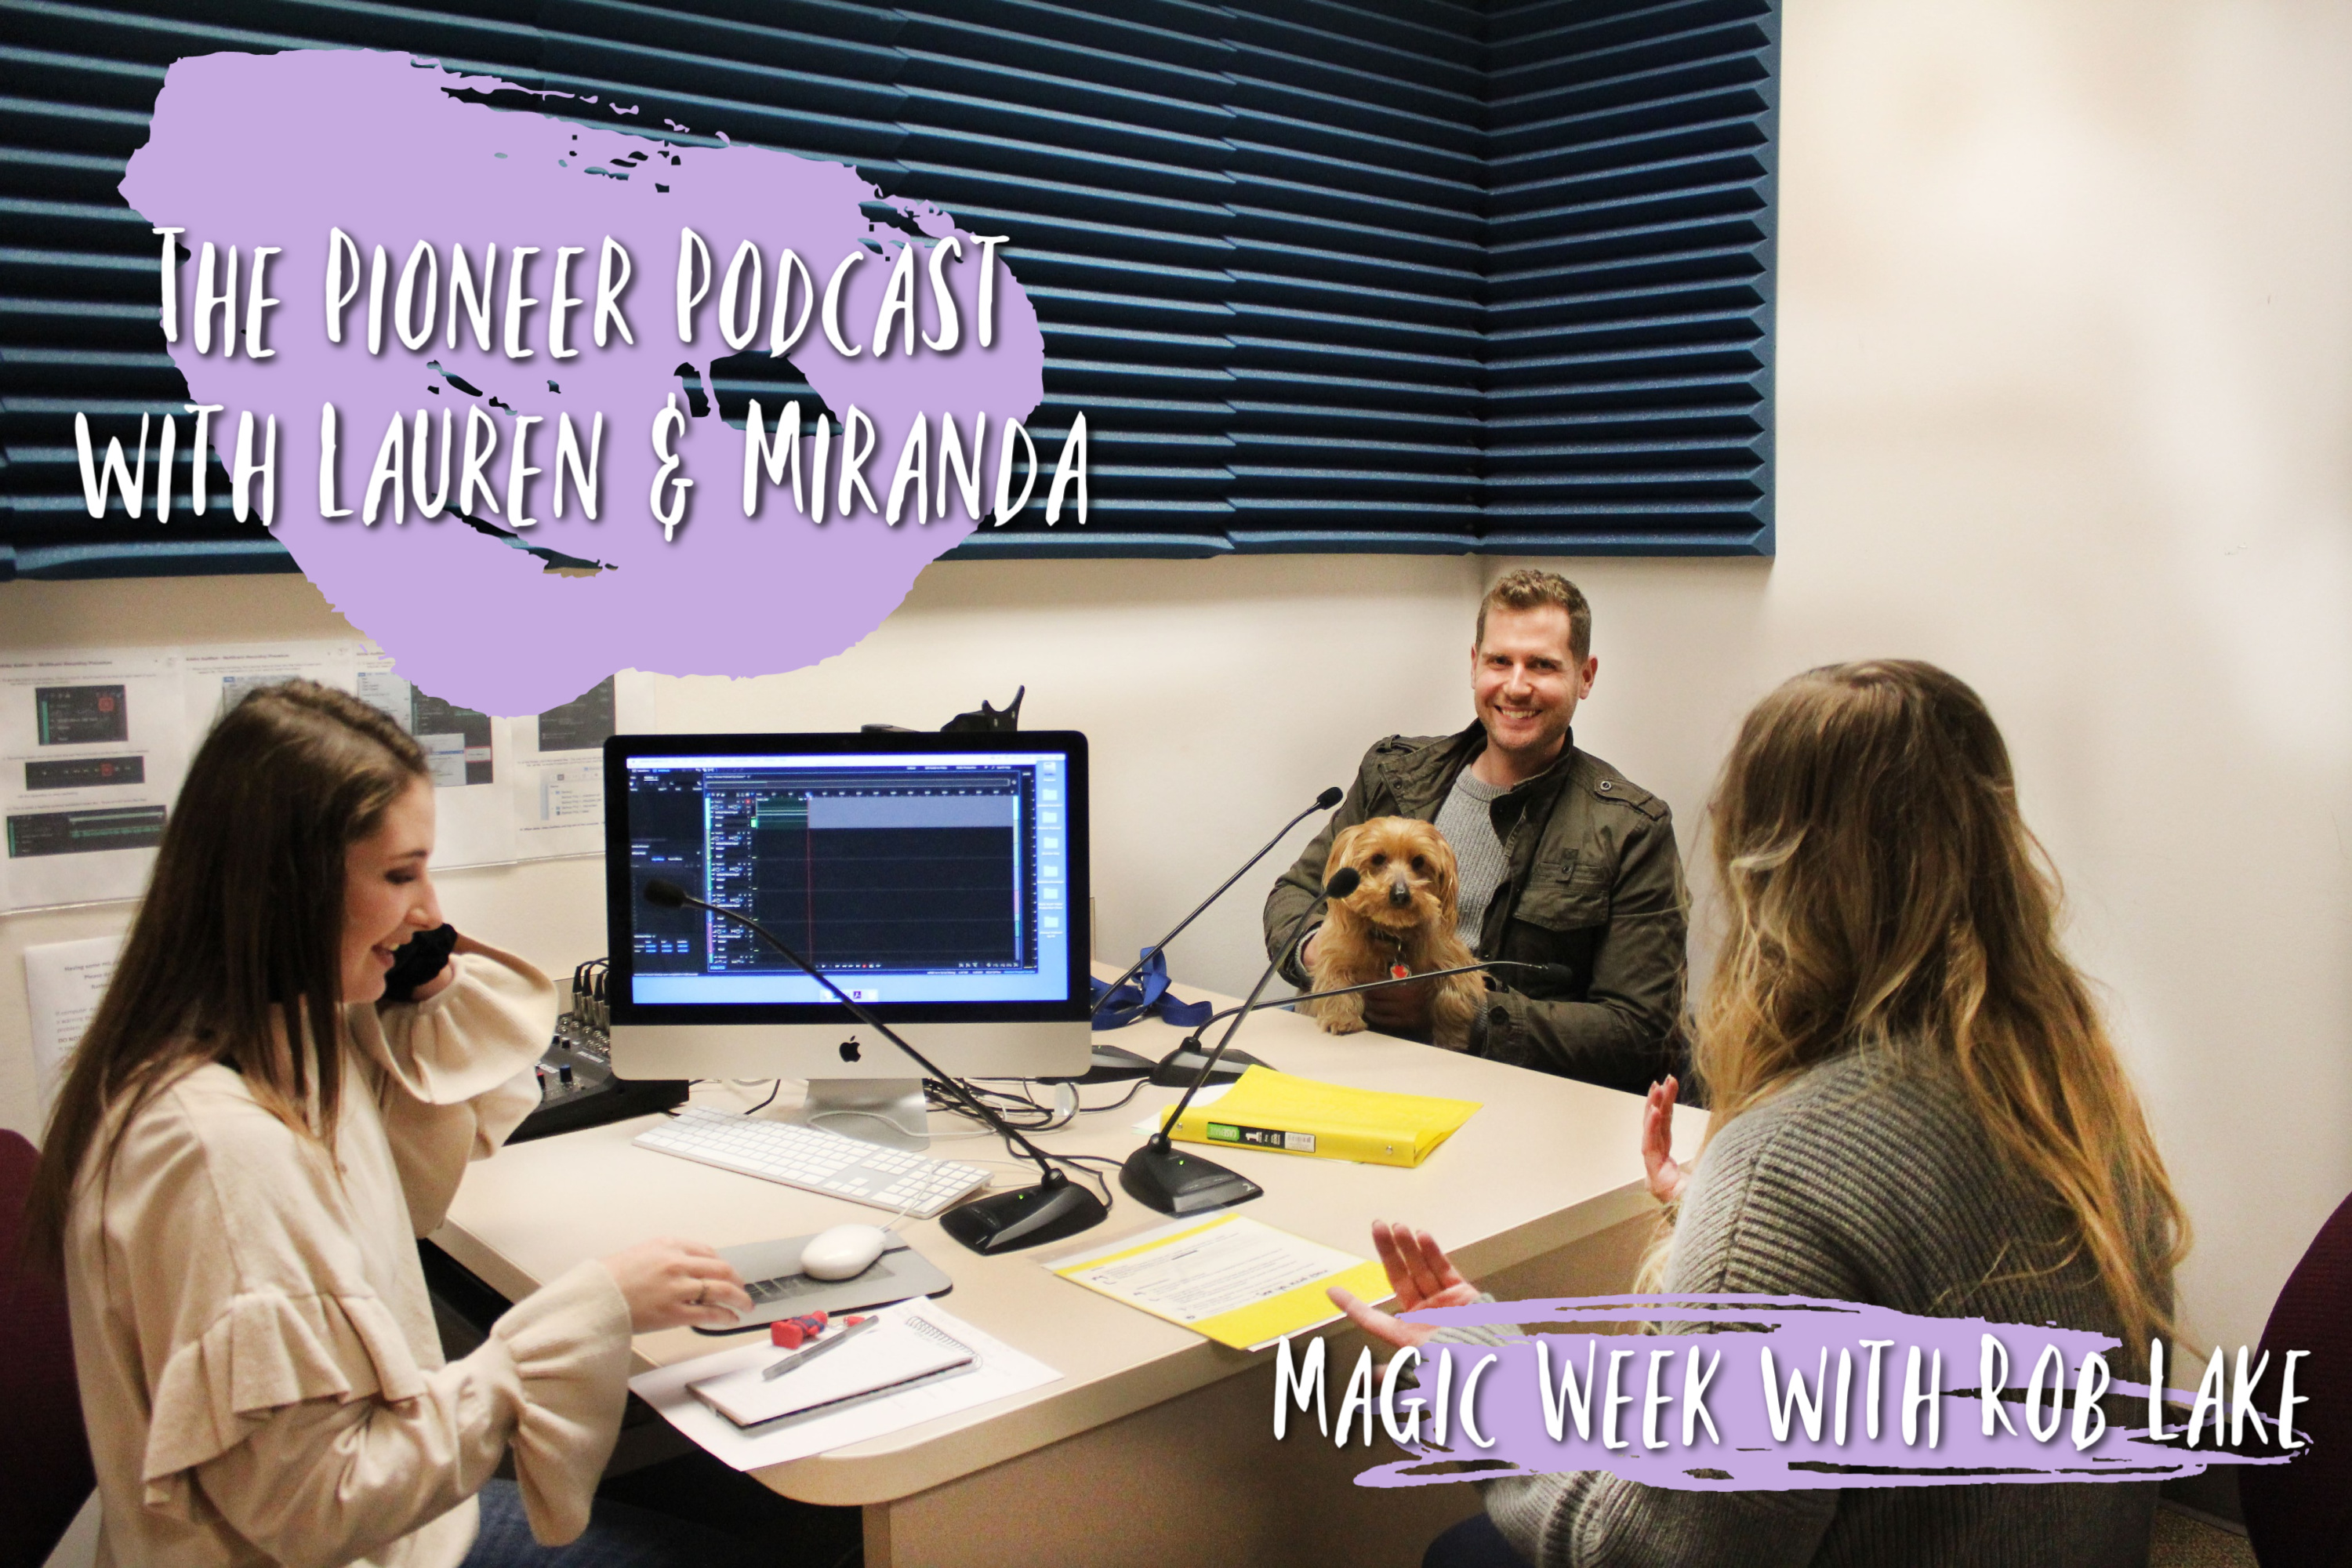 The Pioneer Podcast with Lauren and Miranda: Magic Week with Rob Lake